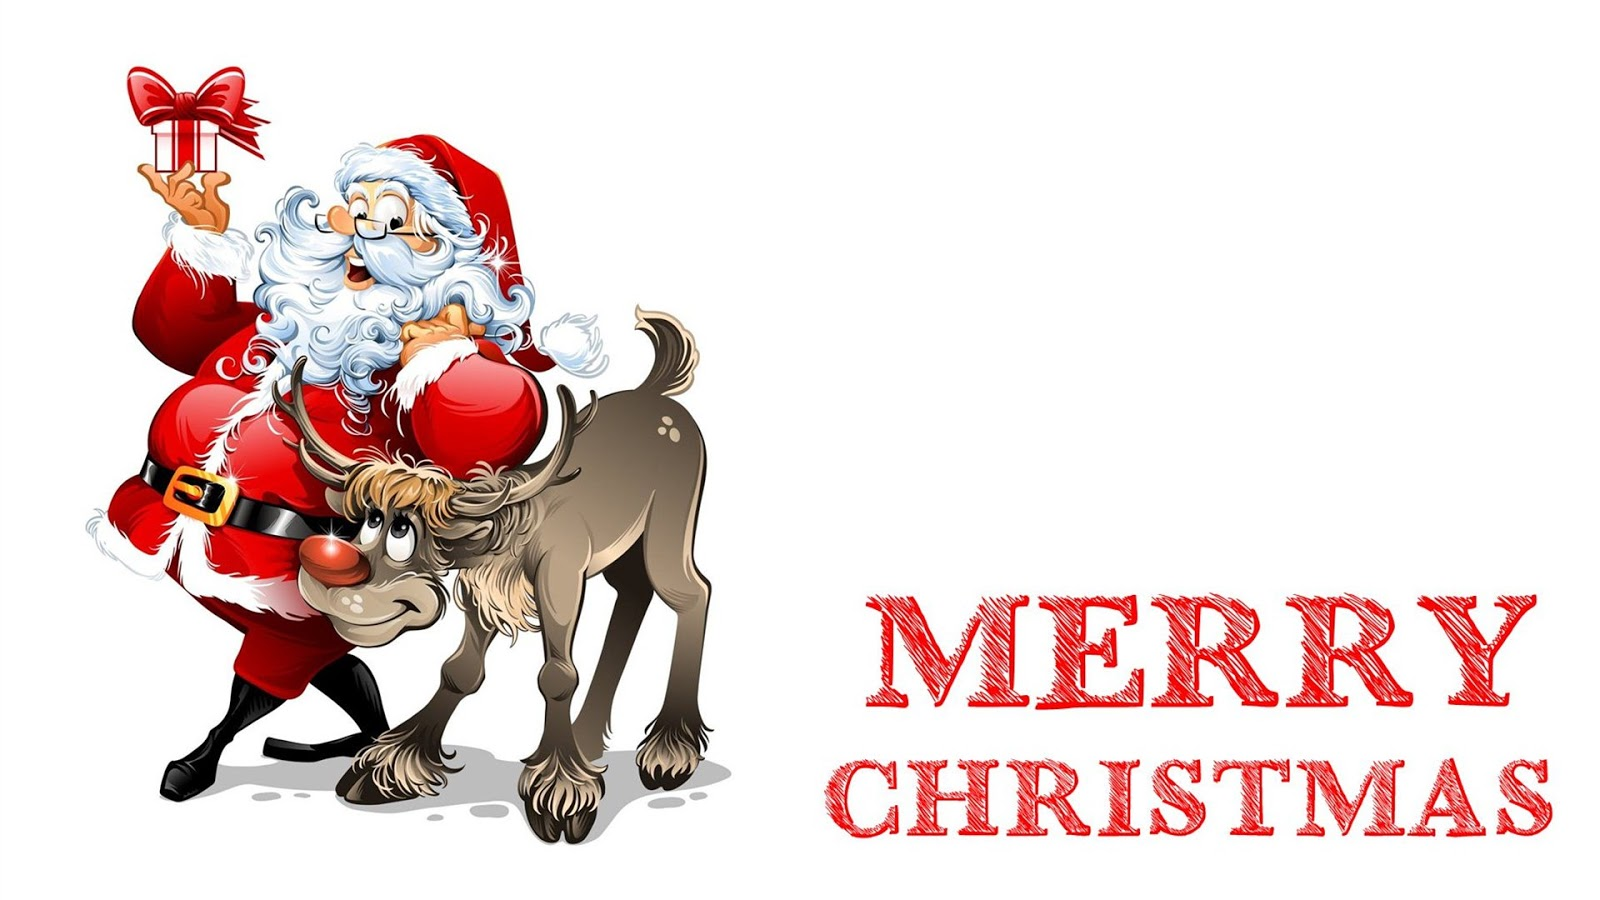 best merry christmas images 2017 pictures religious